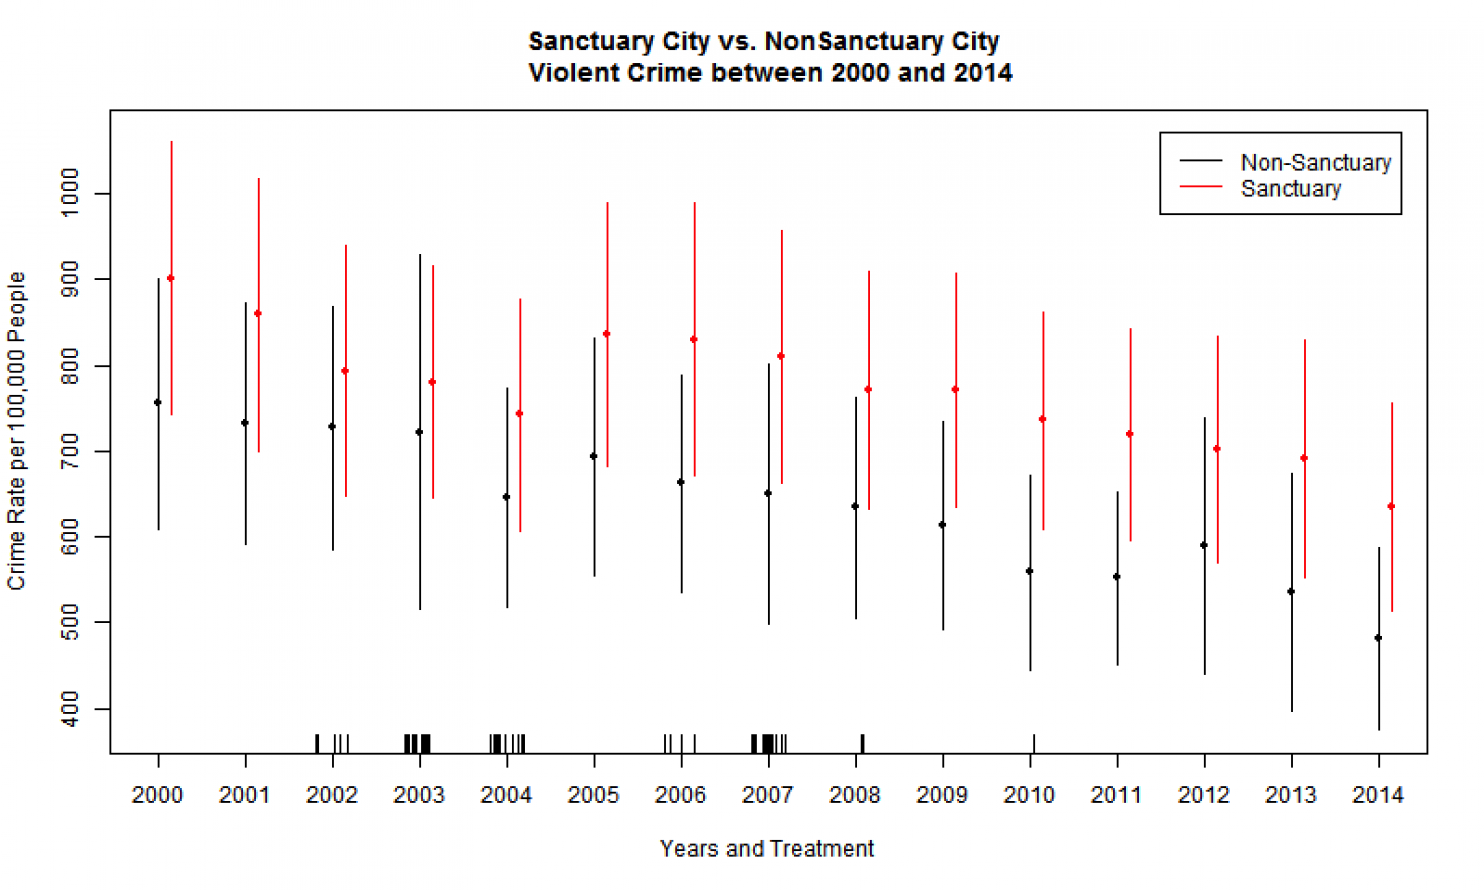 Graph: Sanctuary City vs. Nonsanctuary City Violent Crime Between 2000 and 2014, showing crime rate per 1,000 people